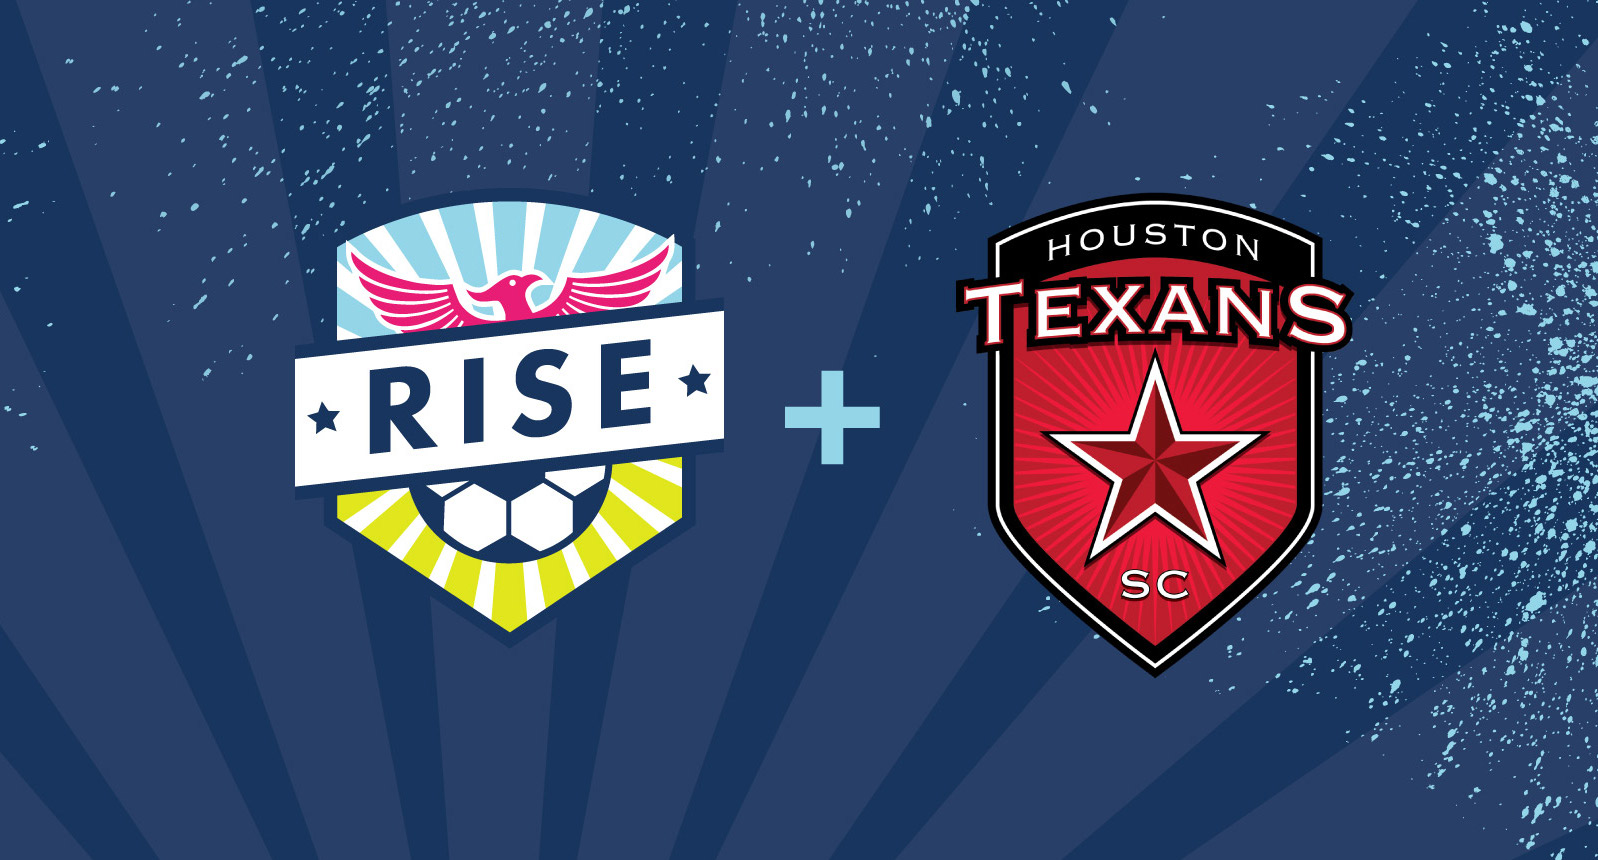 RISE and Texans SC Announce Merger